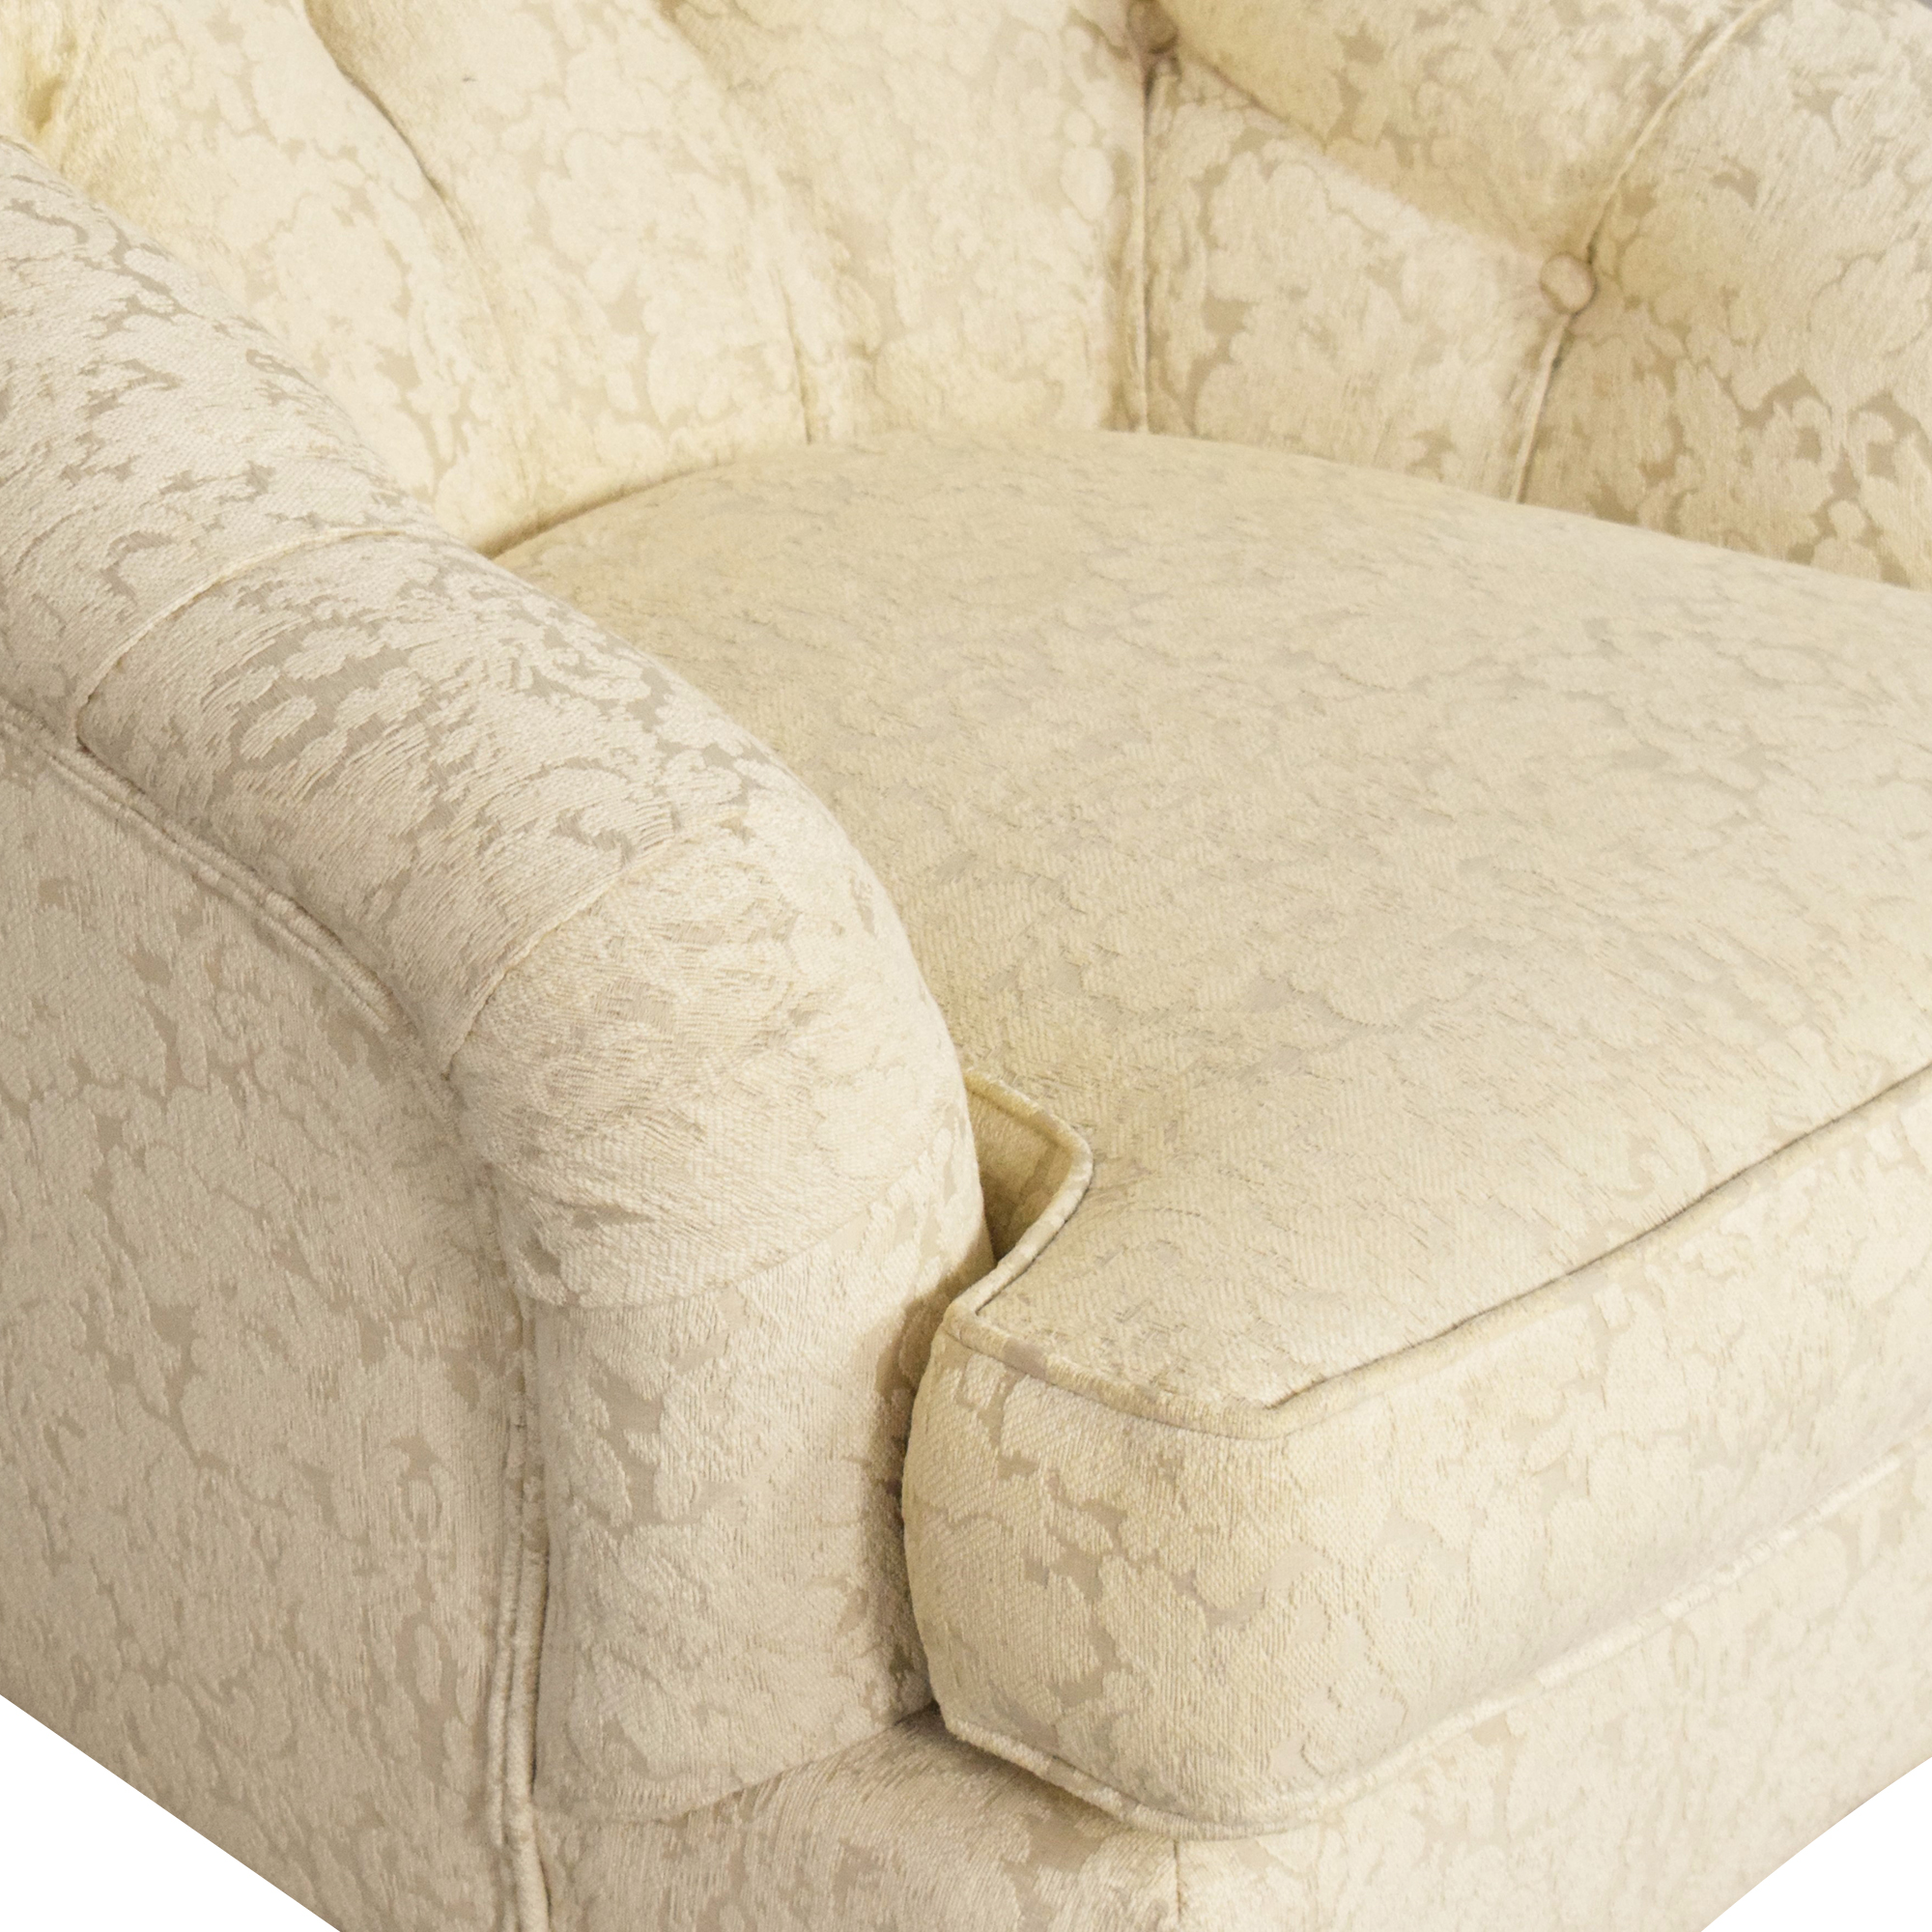 ABC Carpet & Home ABC Carpet & Home Mitchell Gold Accent Chair for sale